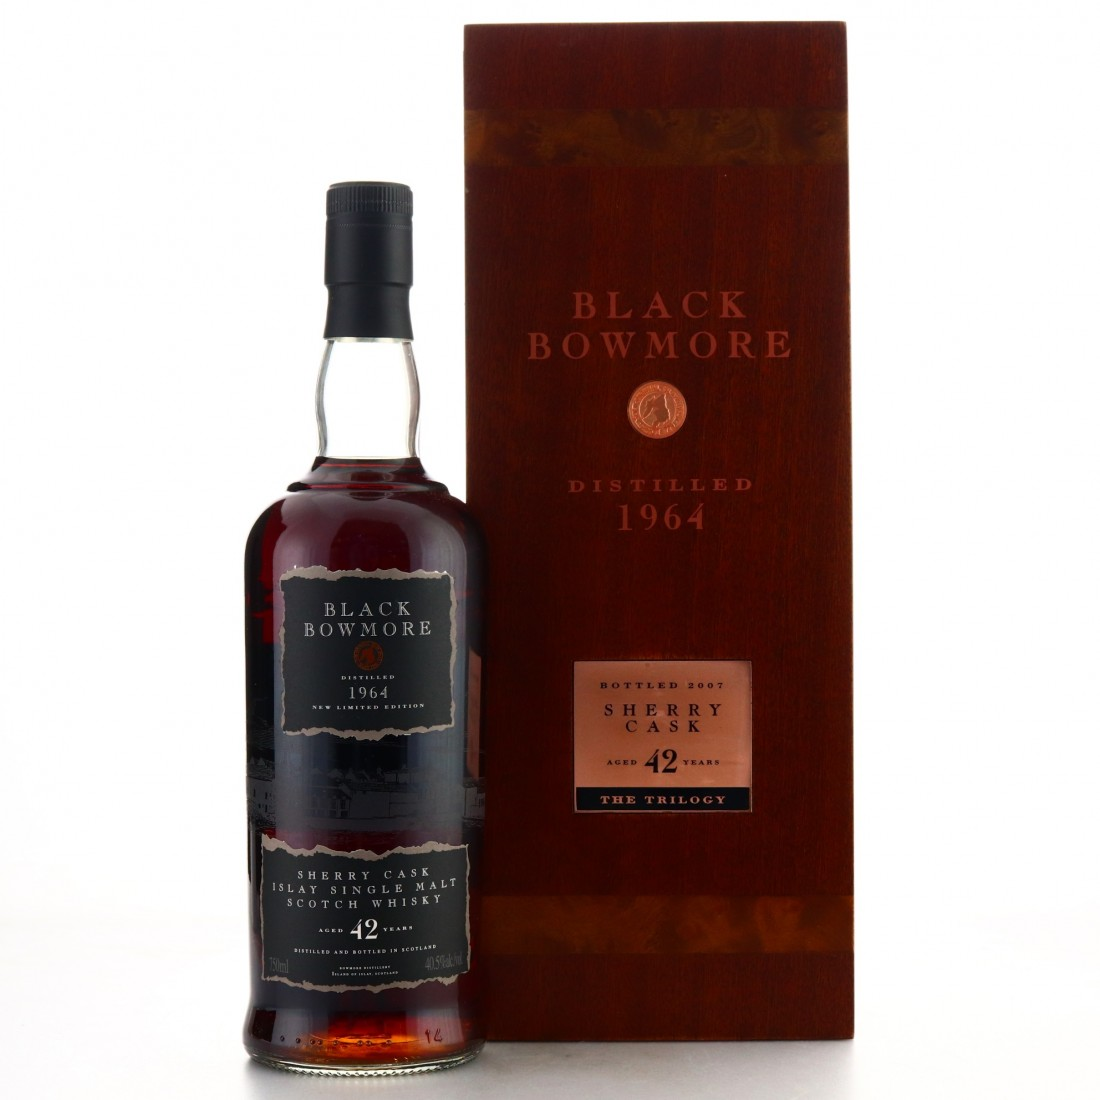 Bowmore 1964 Black Bowmore 42 Year Old 75cl / US Import